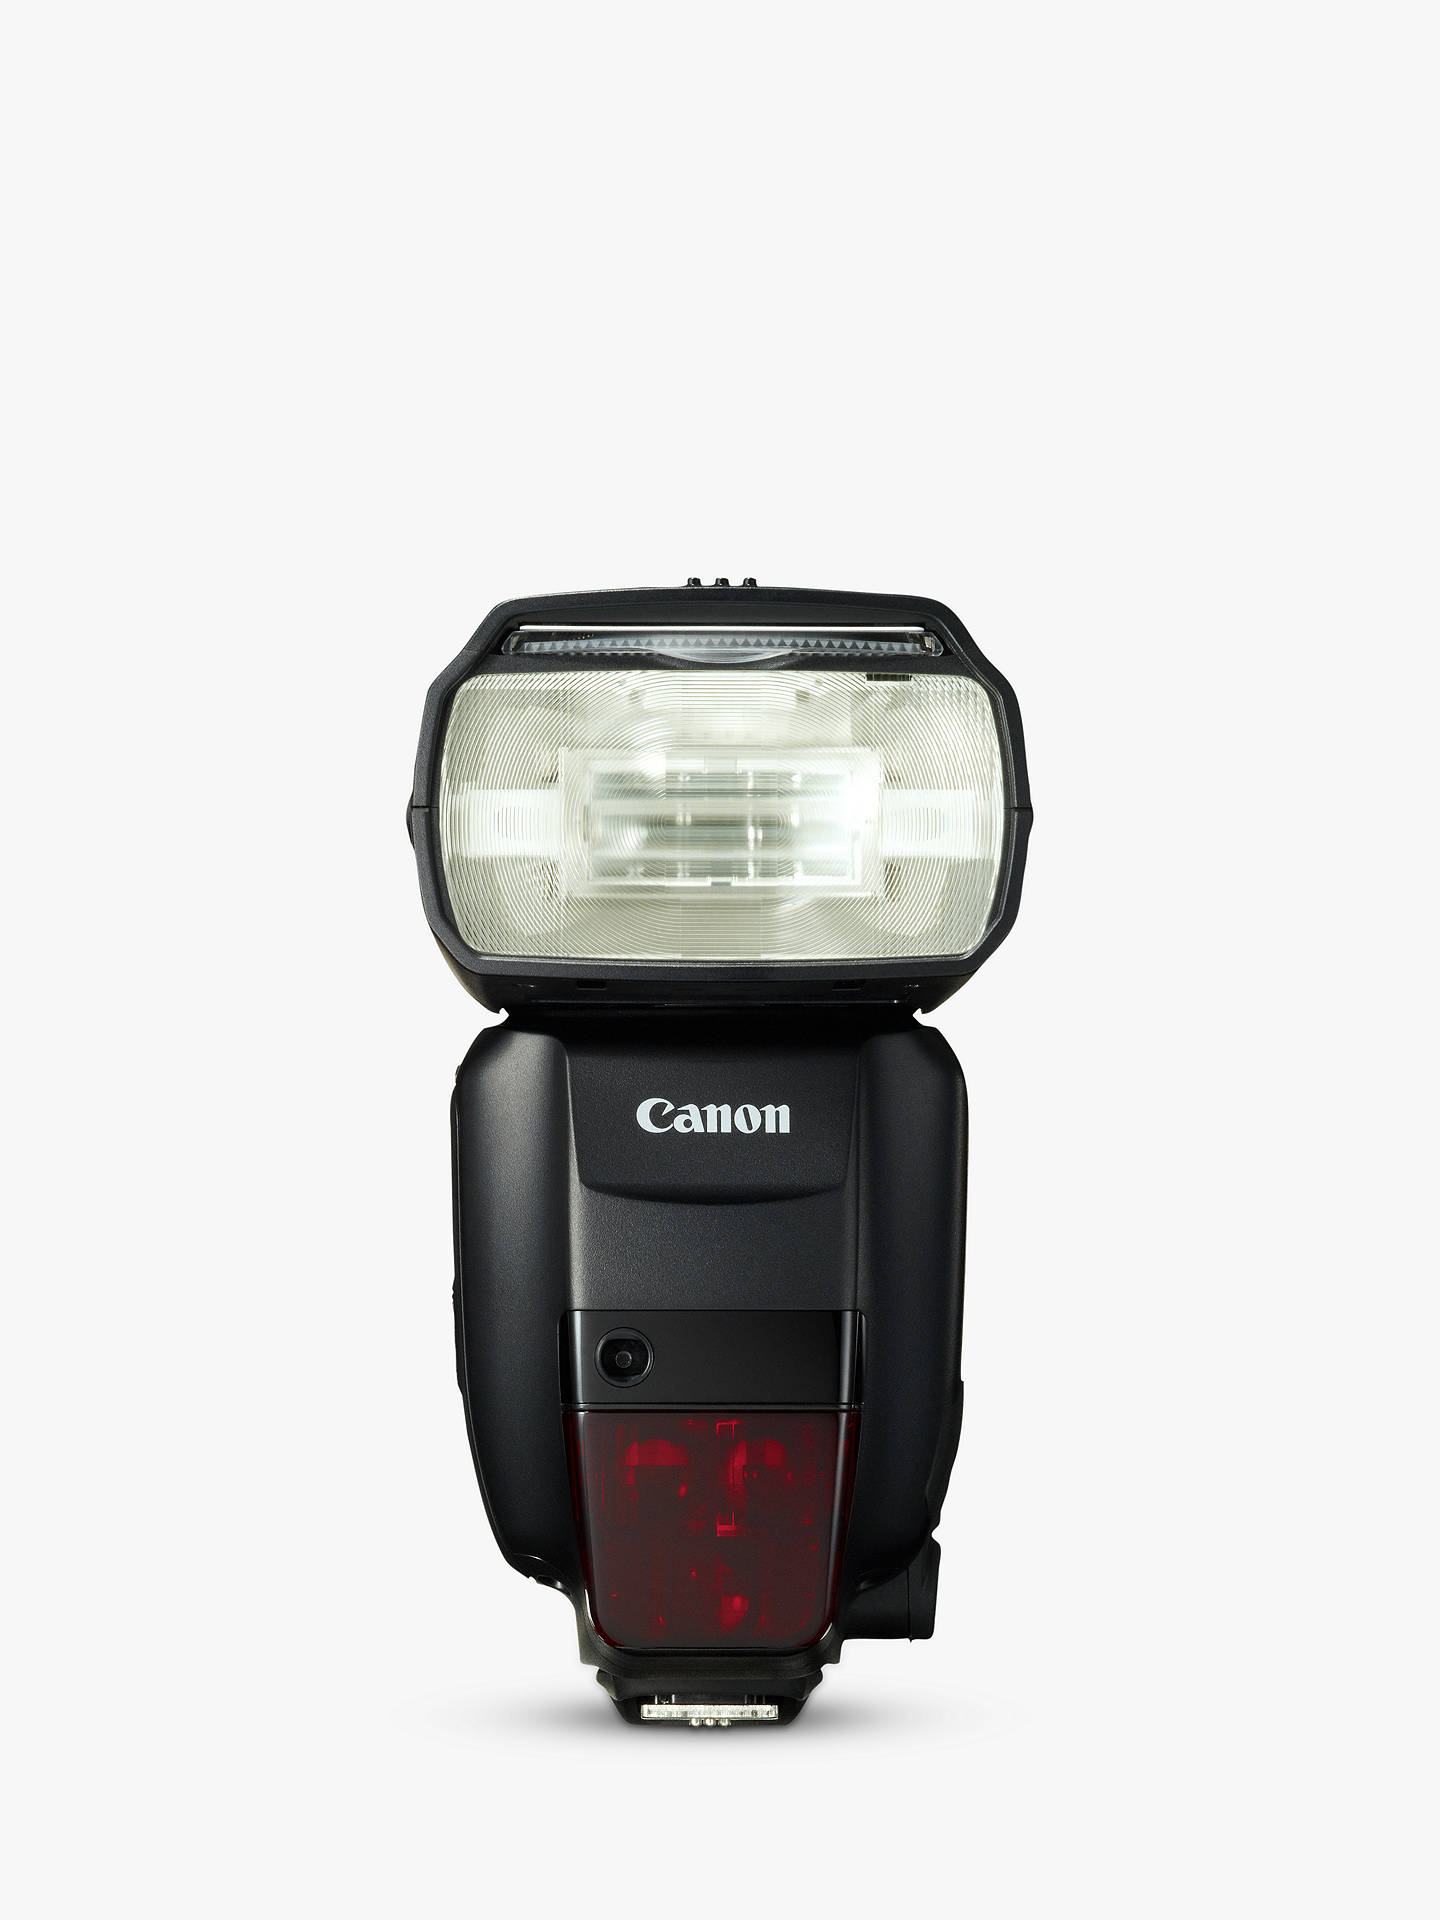 BuyCanon Speedlite 600EX II-RT Flash Online at johnlewis.com